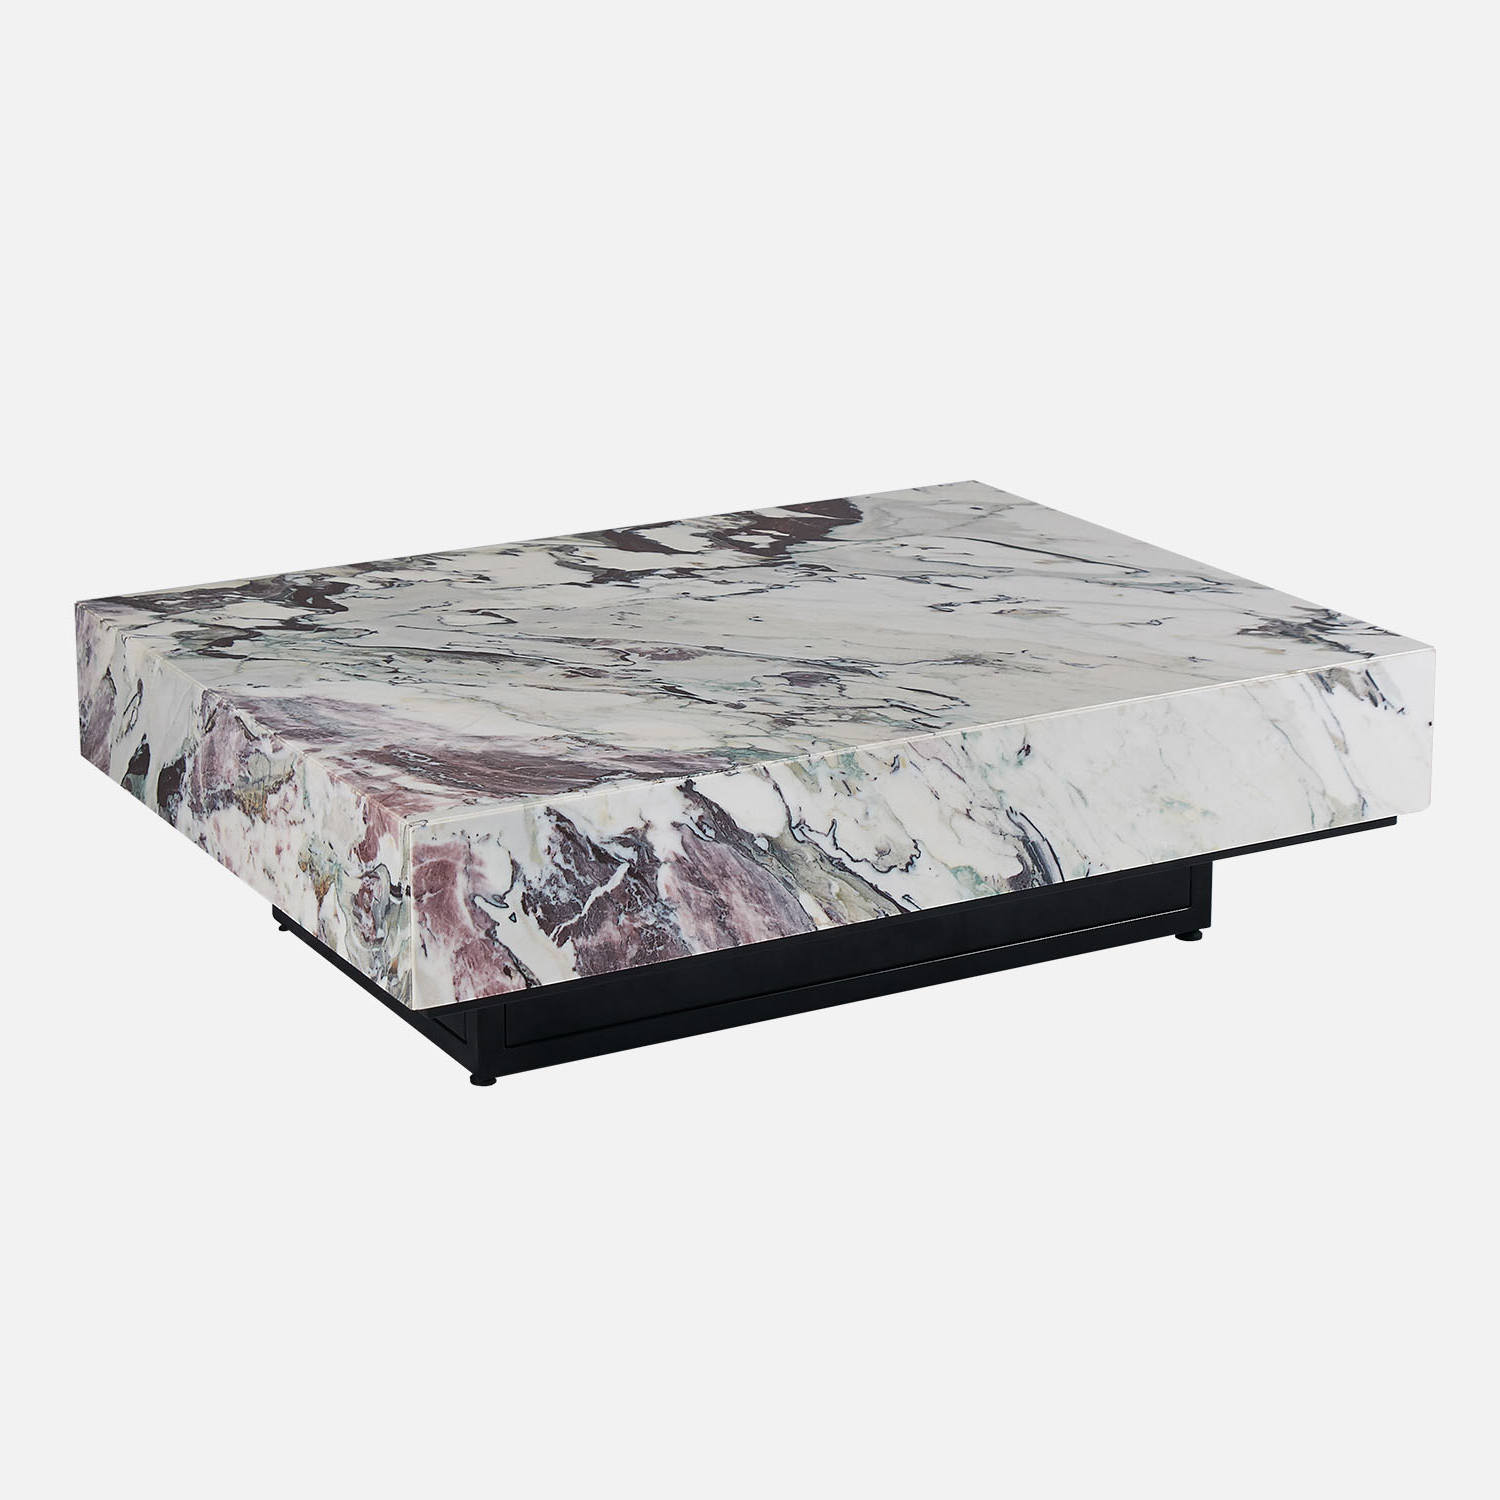 Breccia C Marble Coffee Table Pertaining To Popular Marble Coffee Tables (Gallery 16 of 20)